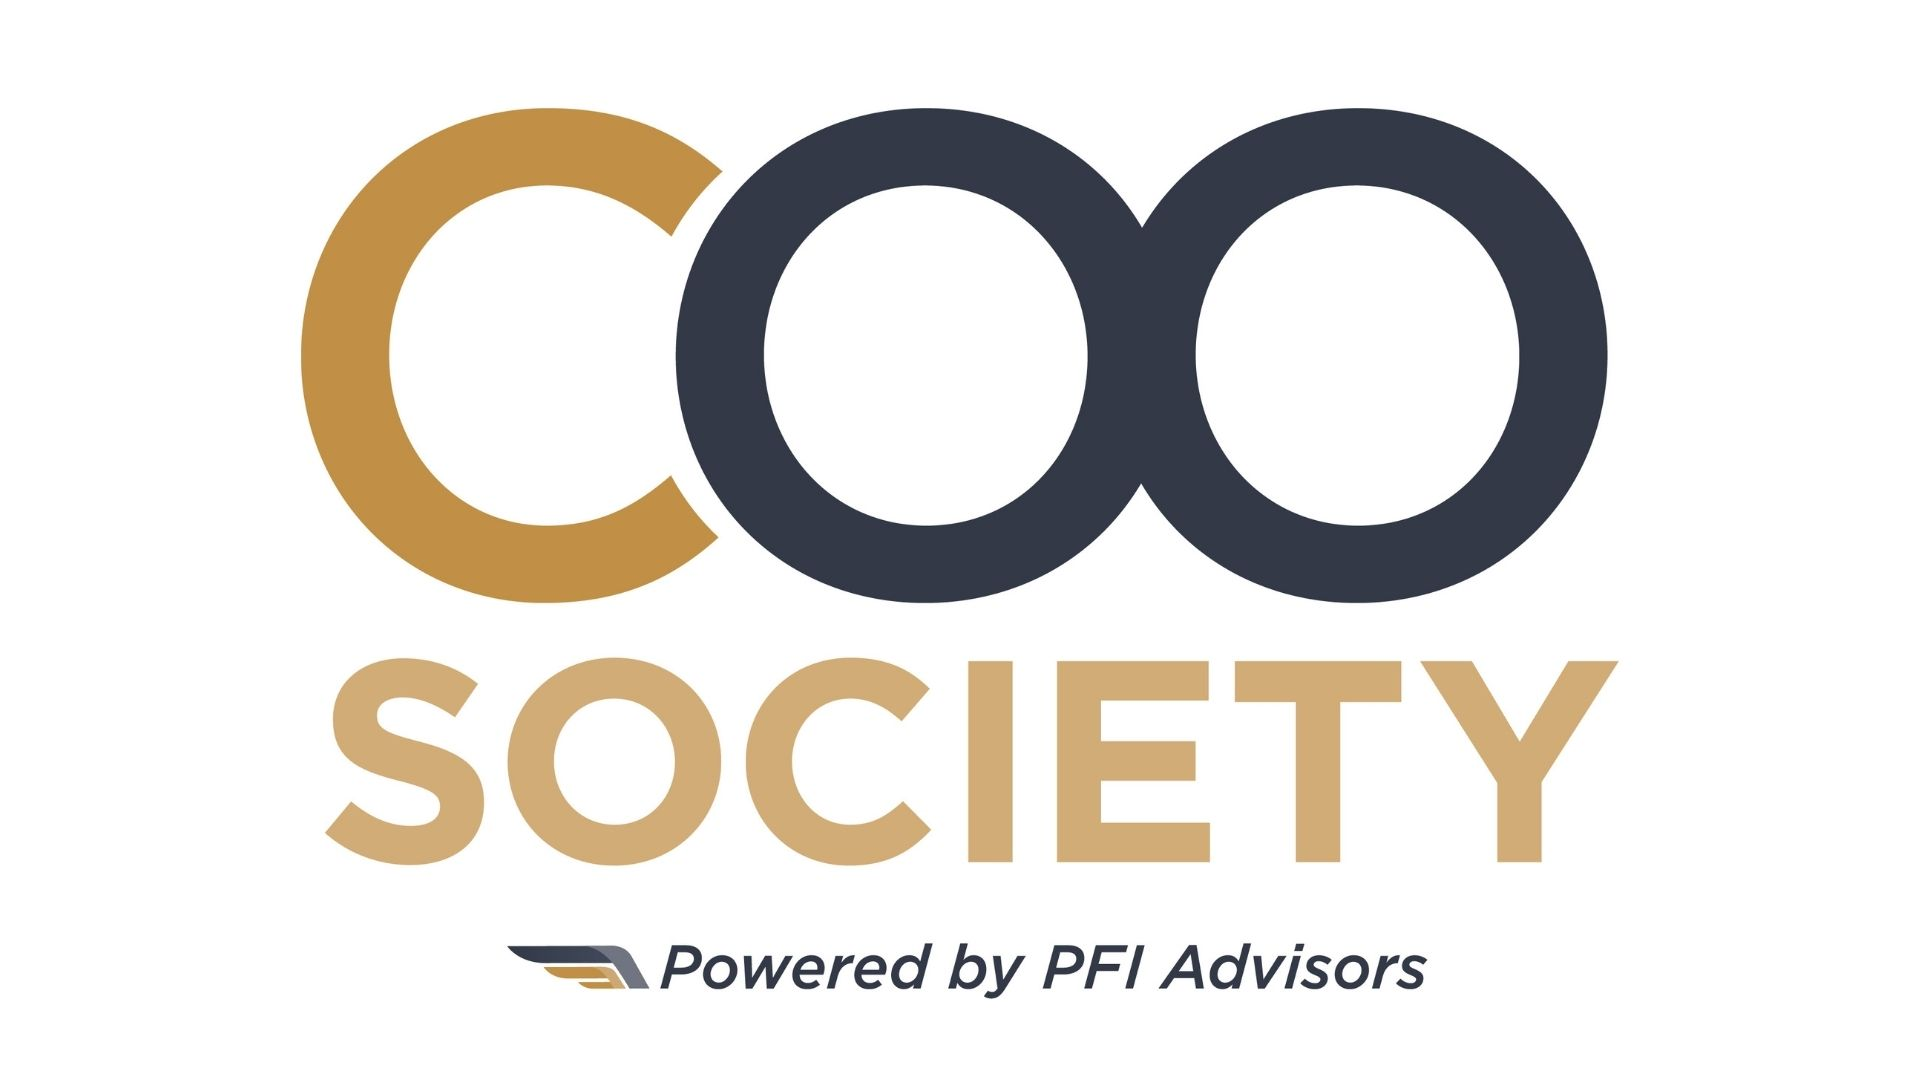 Why We Created  The COO Society